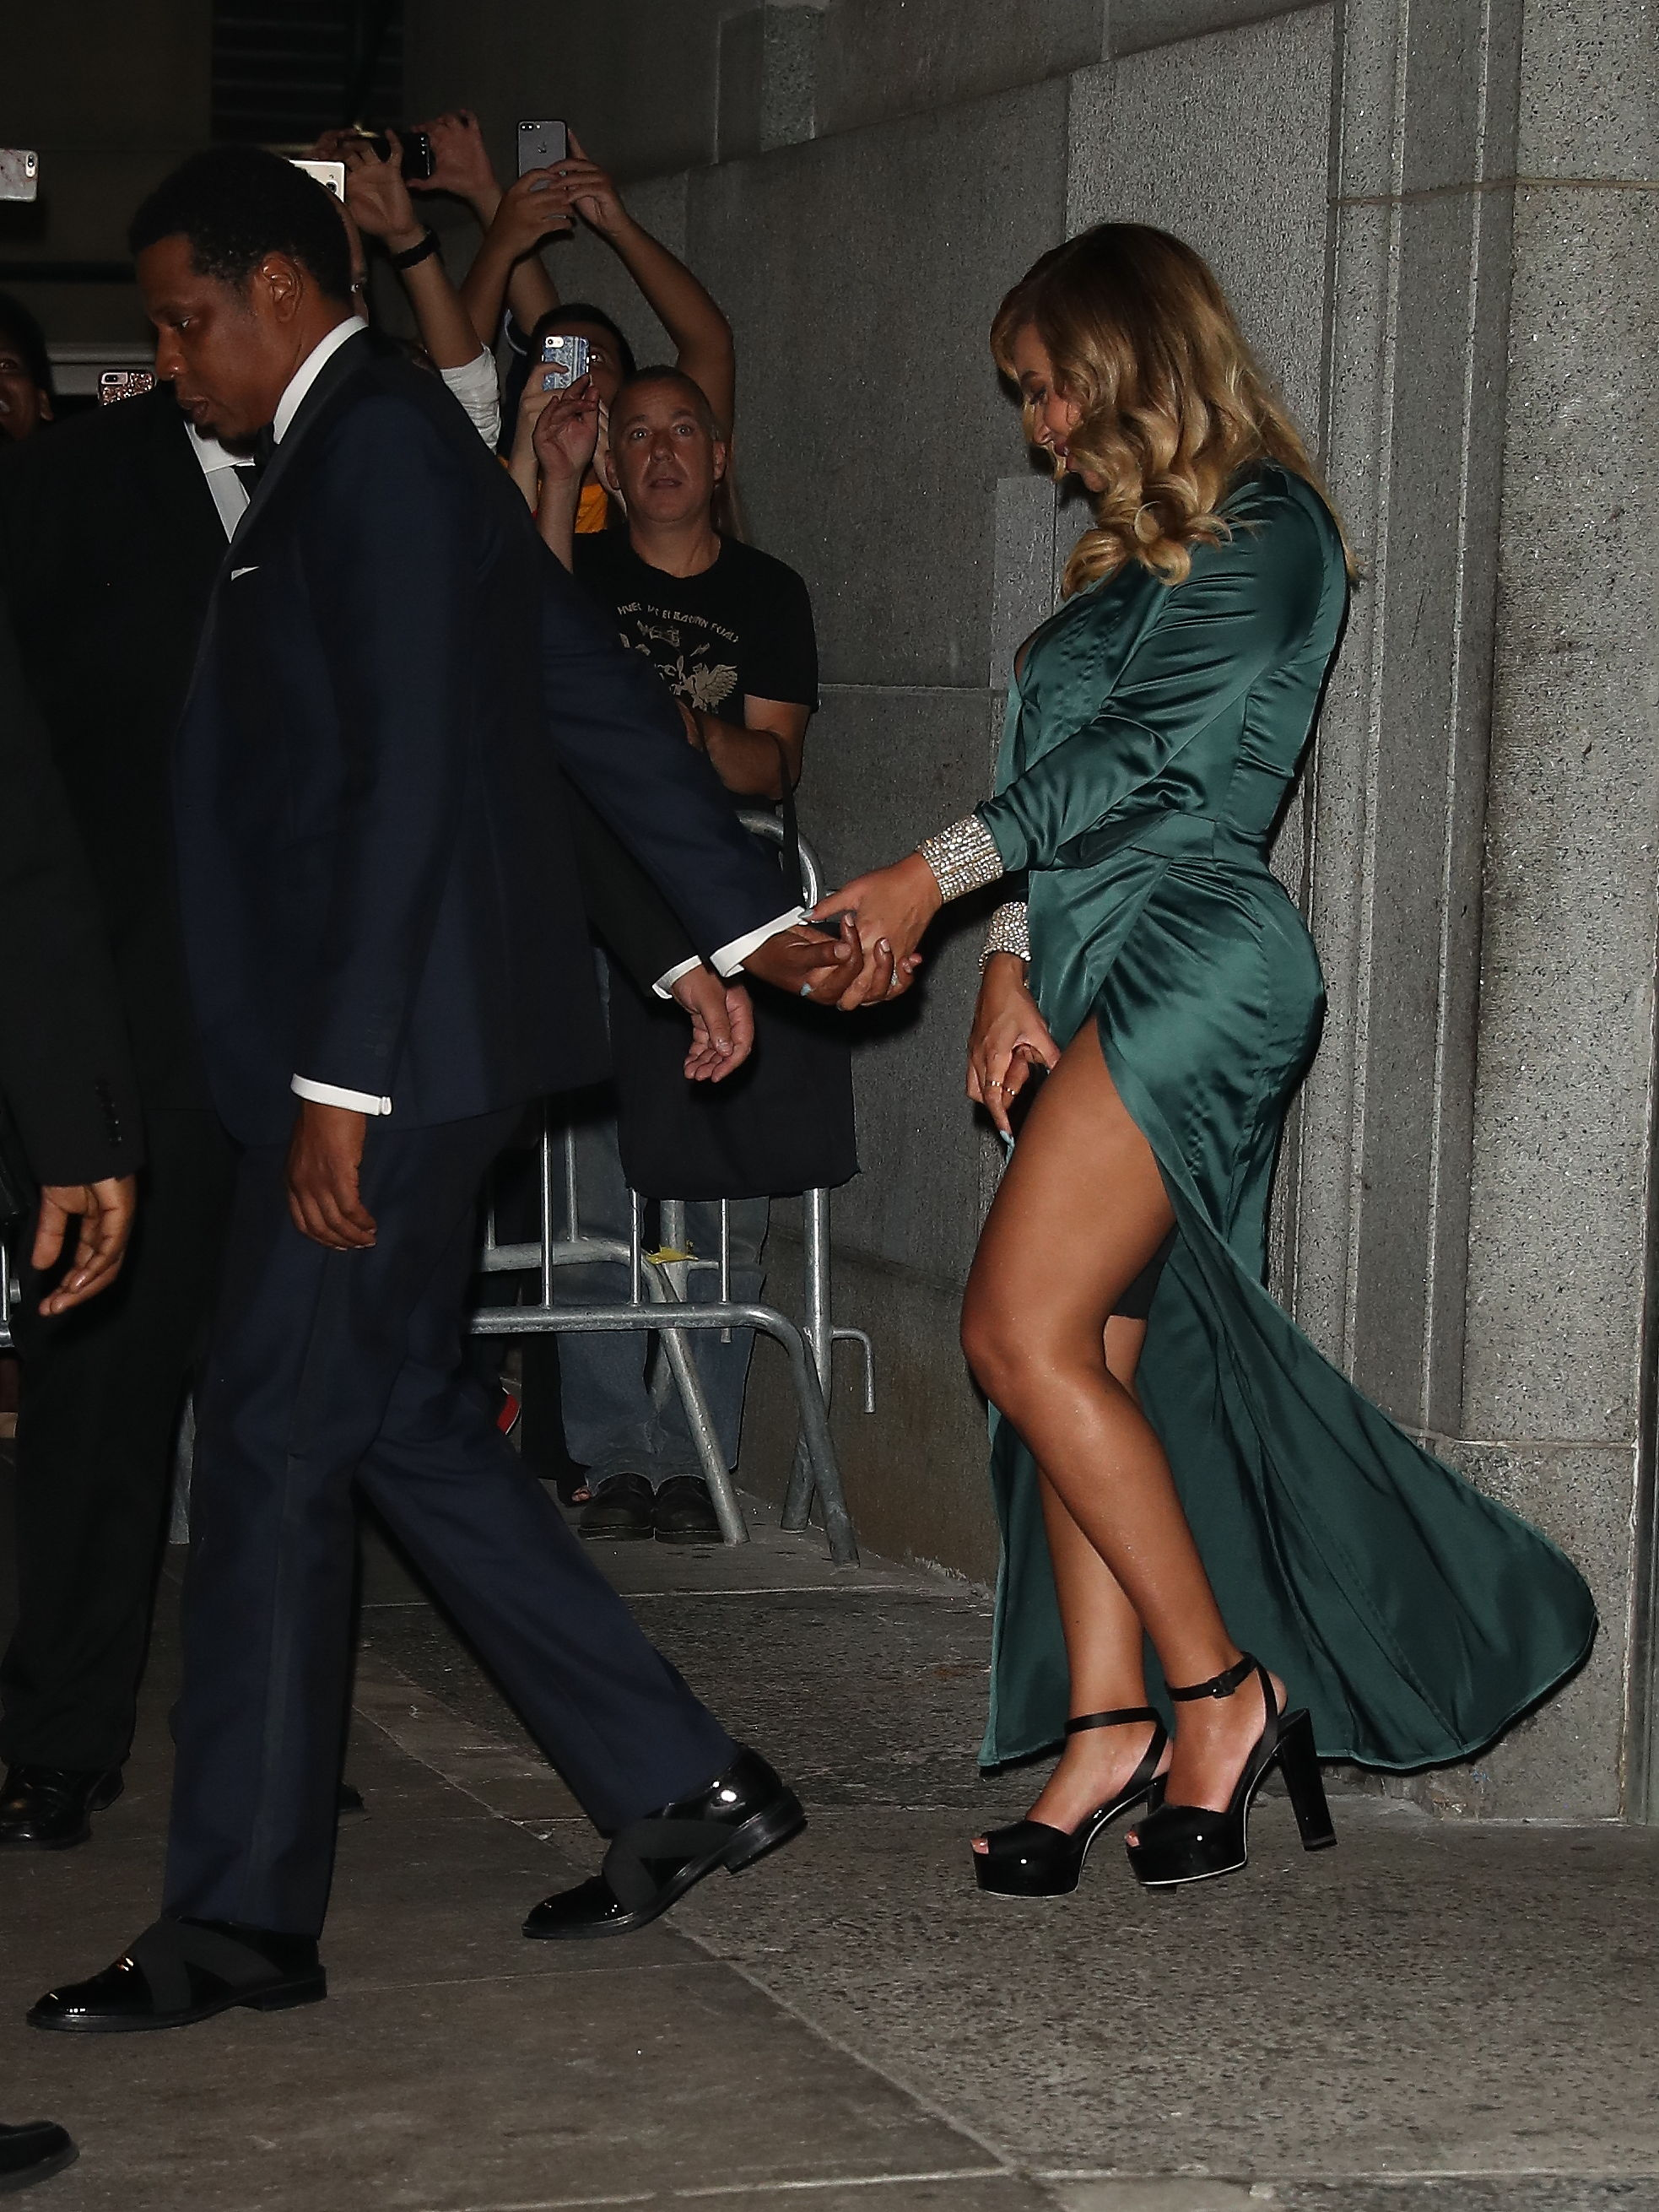 Beyonce and Jay - Z leave Rihanna's Diamond Ball in New York City.  <P> Pictured: Beyonce and Jay - Z leave Rihanna Diamond Ball in NYC <B>Ref: SPL1579046  150917  </B><BR/> Picture by: Pap Nation / Splash News<BR/> </P><P> <B>Splash News and Pictures</B><BR/> Los Angeles:310-821-2666<BR/> New York:212-619-2666<BR/> London:870-934-2666<BR/> <span id=